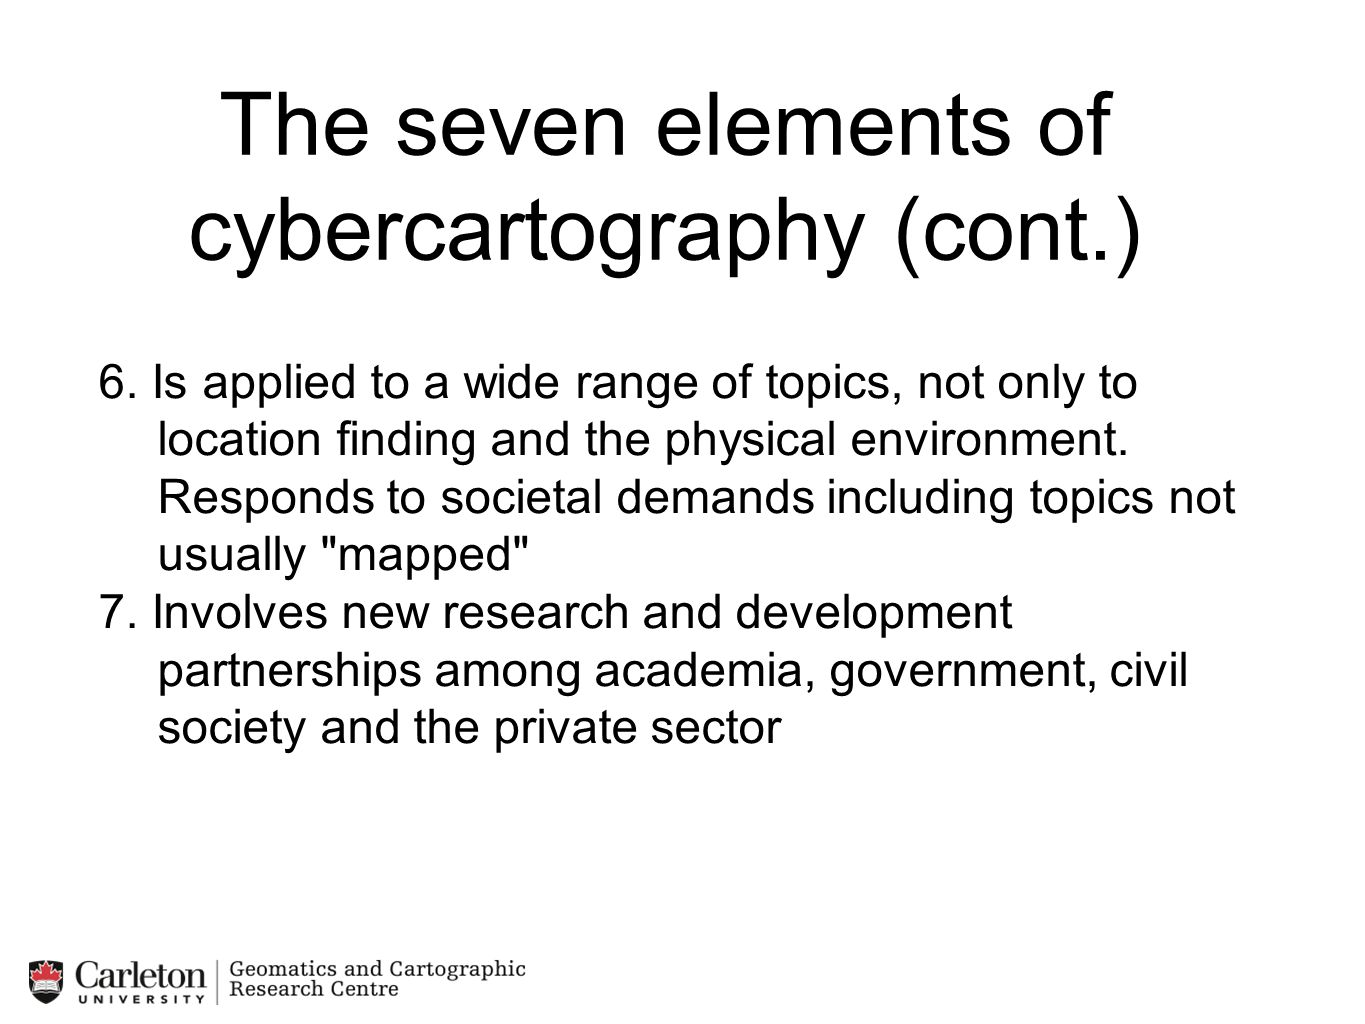 The seven elements of cybercartography (cont.)